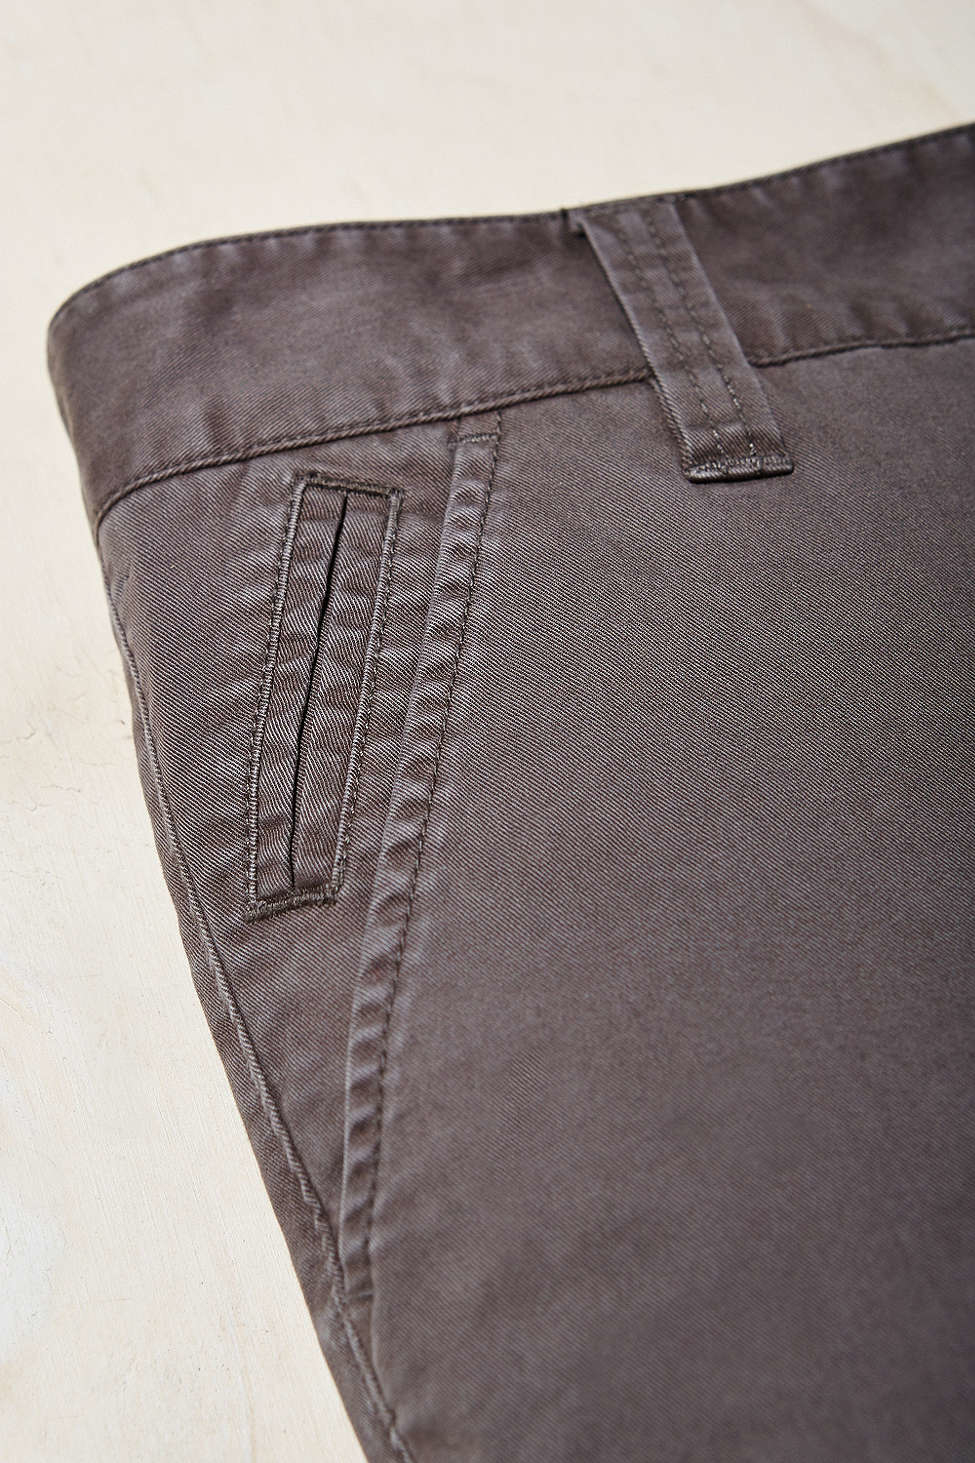 hawkings mcgill washed skinny stretch chino pant in black